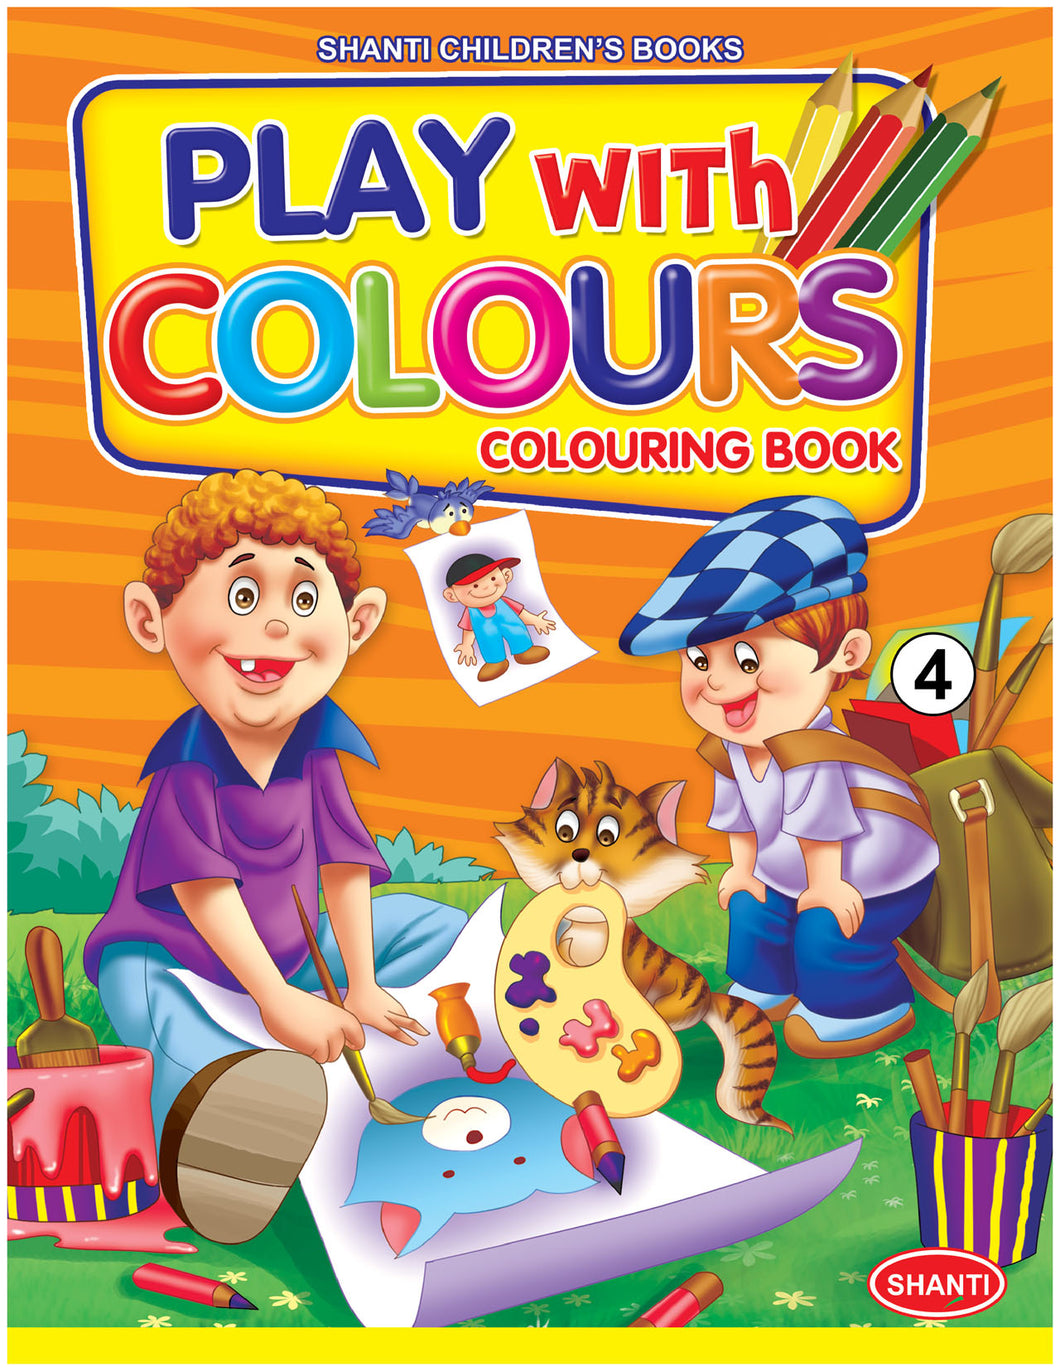 Colouring Books for Children - Play with Colours - 4